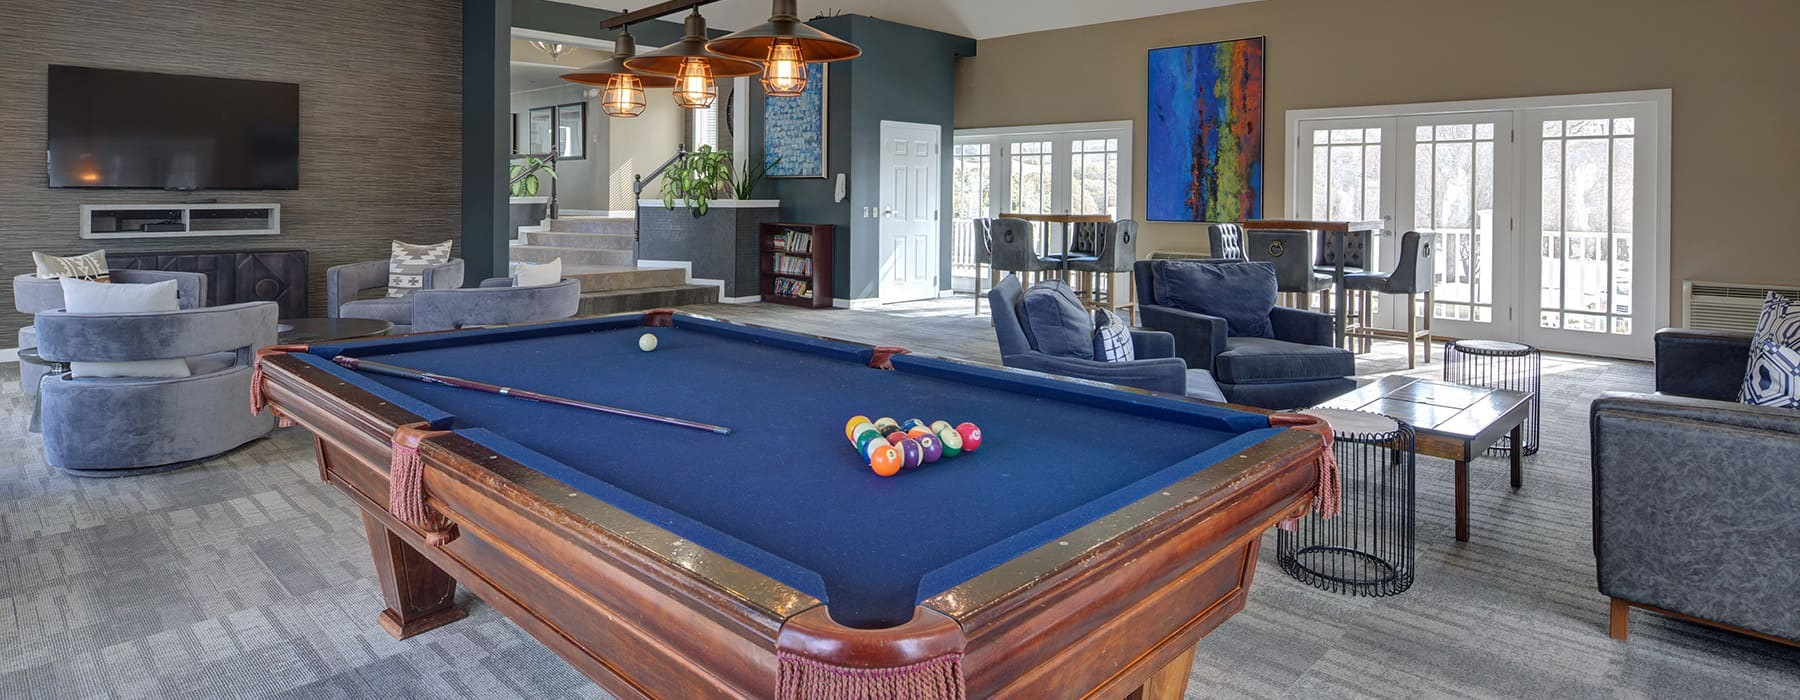 spacious clubroom with a pool table and modern design